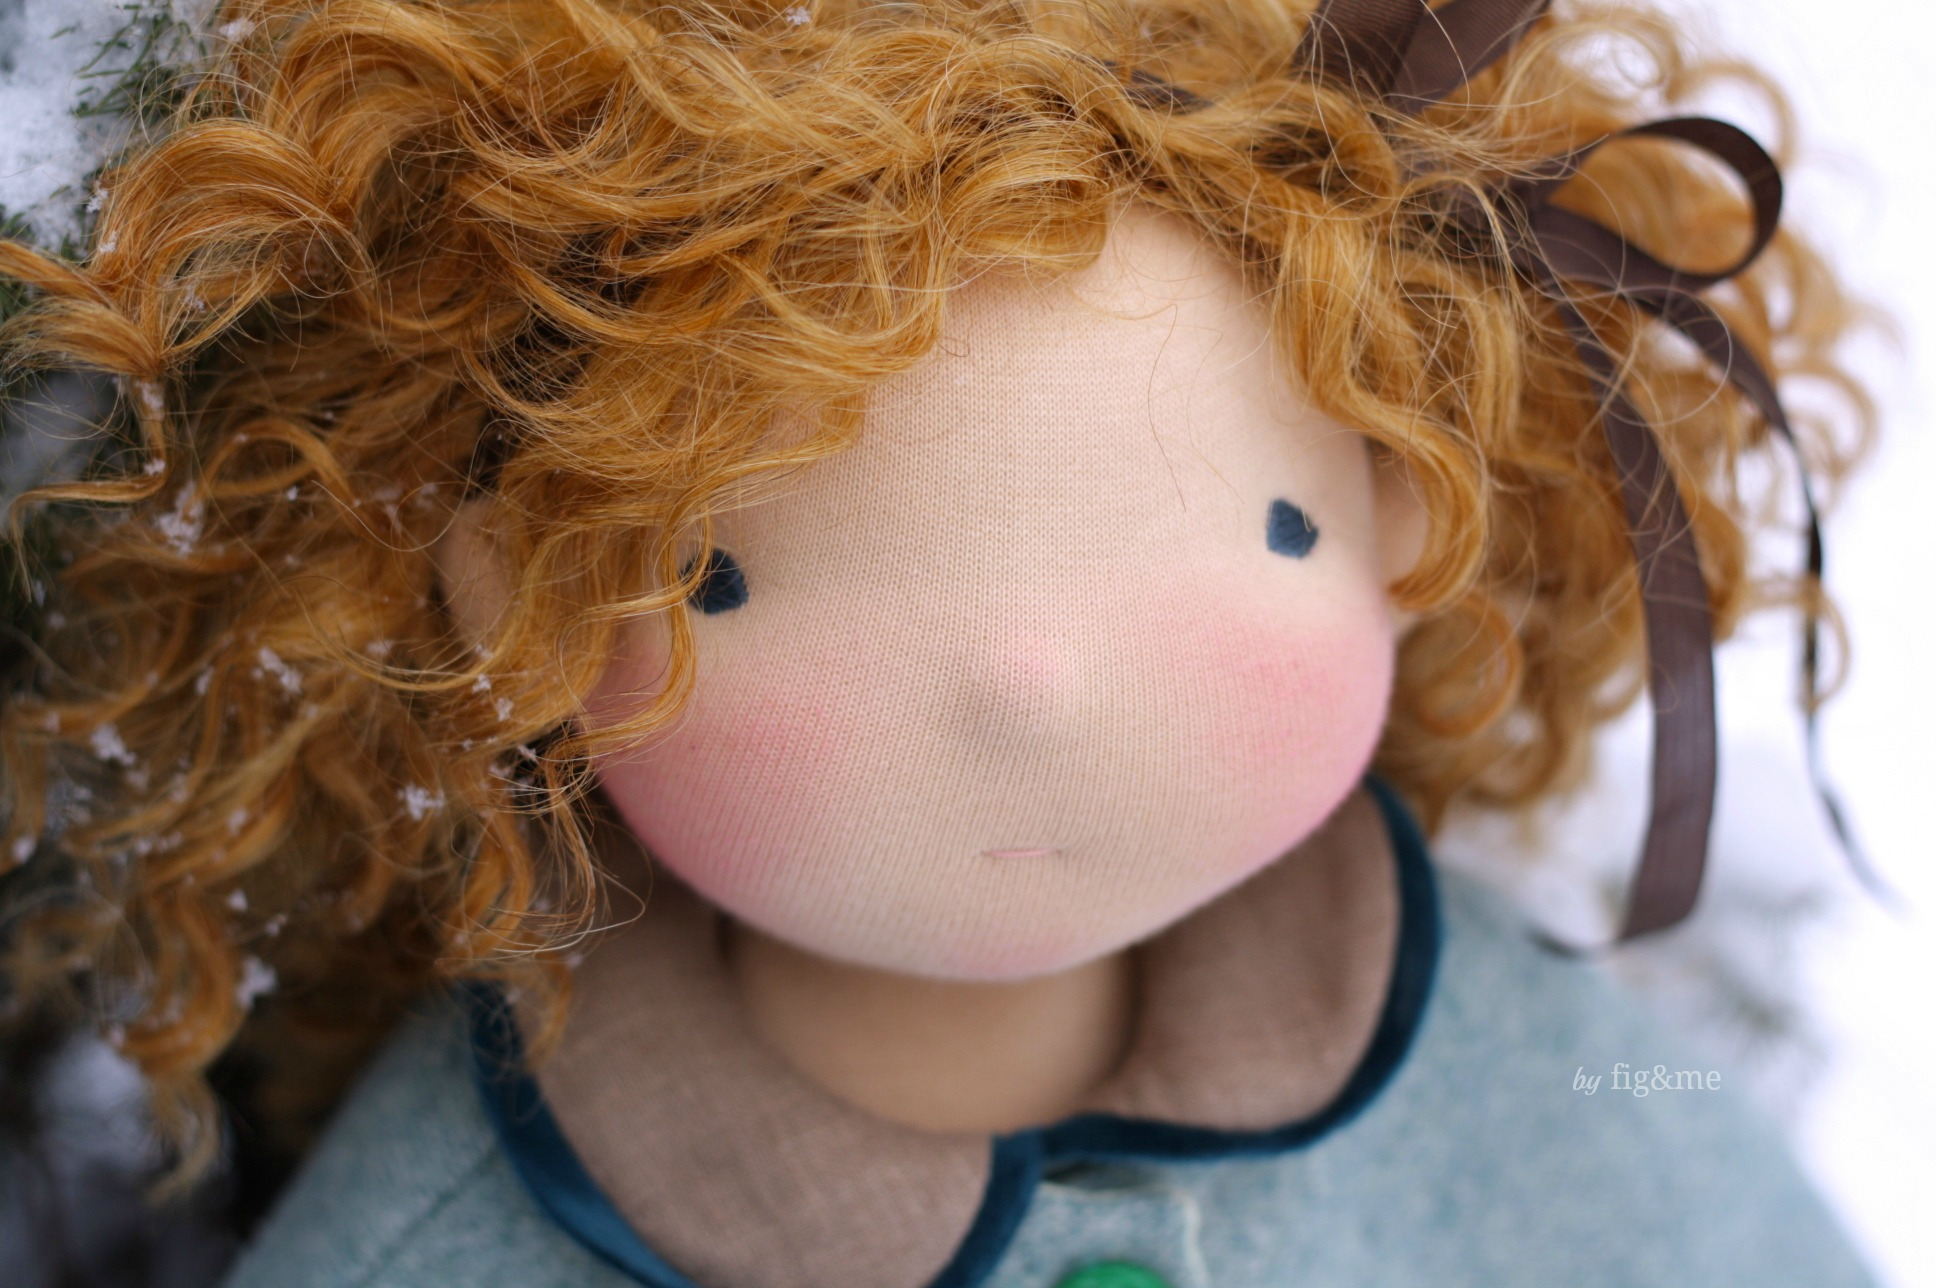 Hermione, by Fig&me.